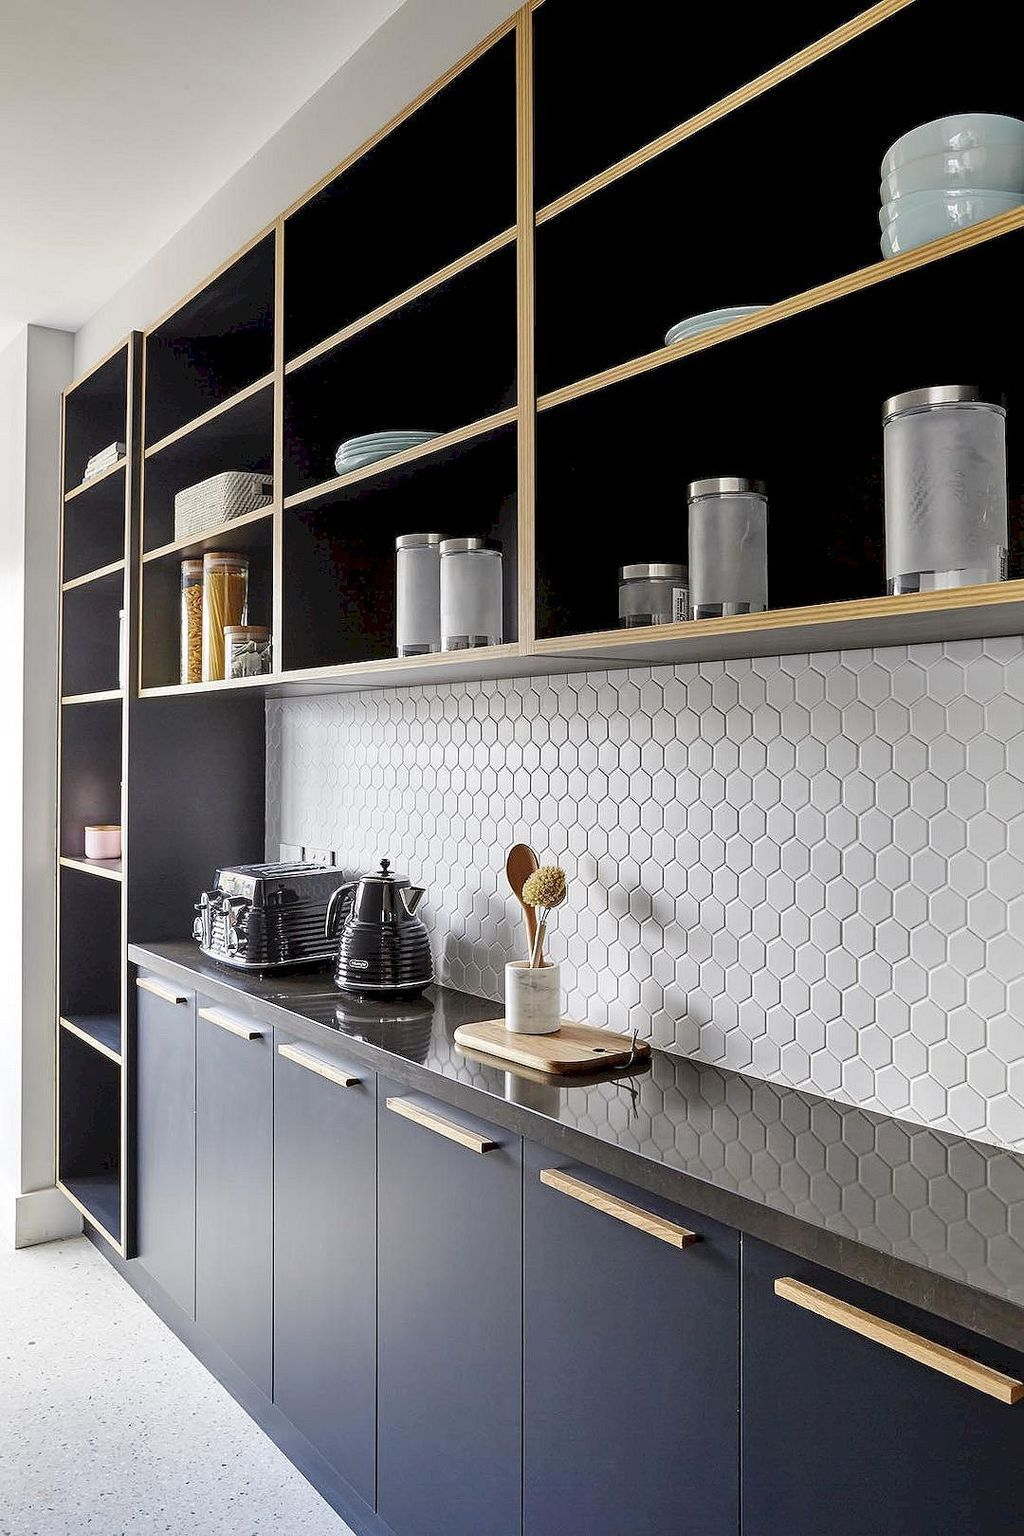 55 Stunning Geometric Backsplash Tile Kitchen Ideas Http Addneynews Info 55 Stunning Geometric Backsplash Tile Kit Kuchen Design Kuchen Planung Kuchendesign